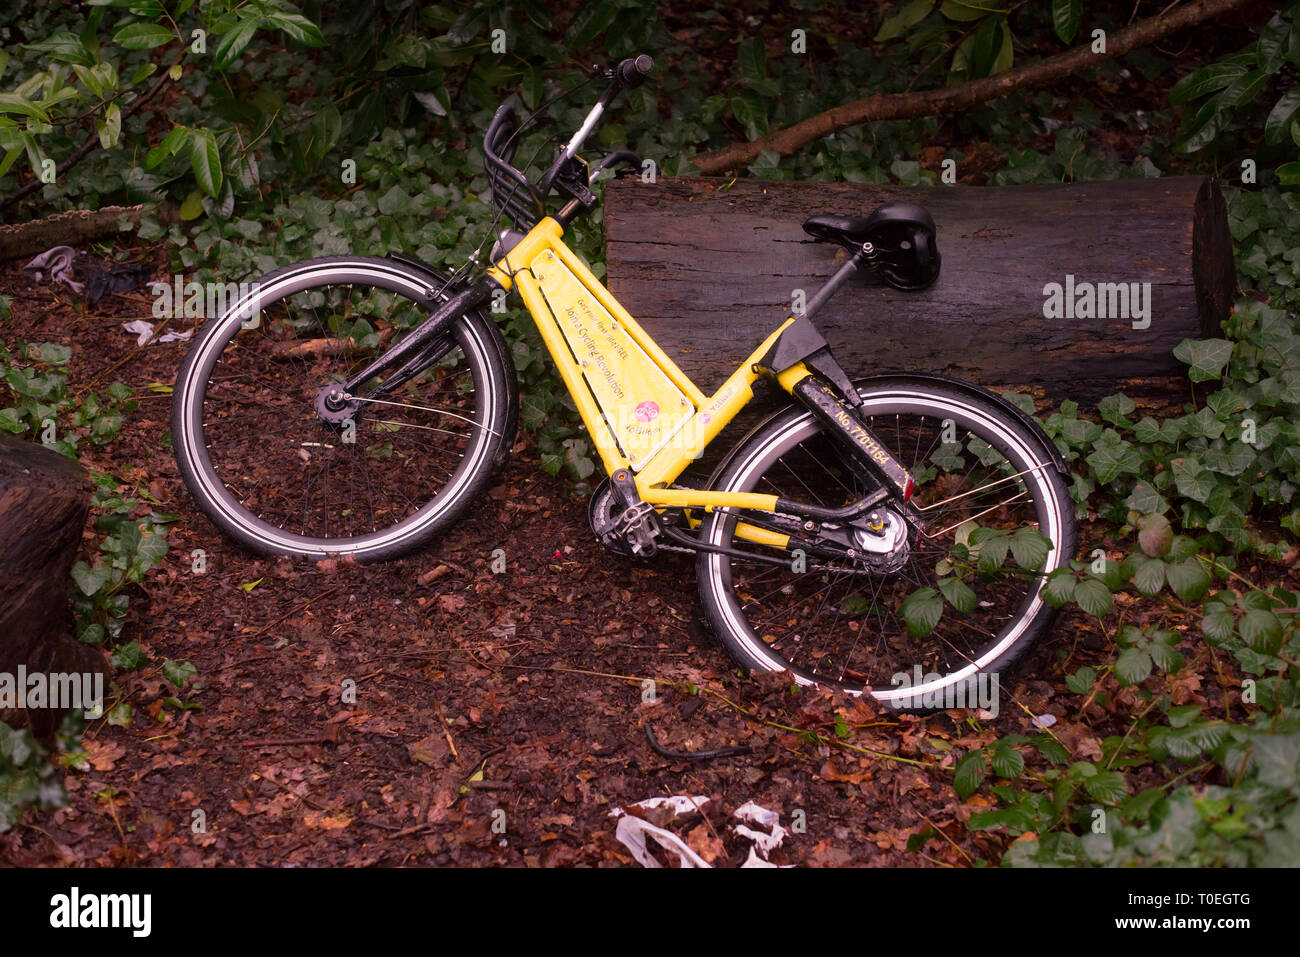 A bicycle belonging to the YoBike dockless bike sharing scheme abandoned amoong bushes on Southampton Common. - Stock Image